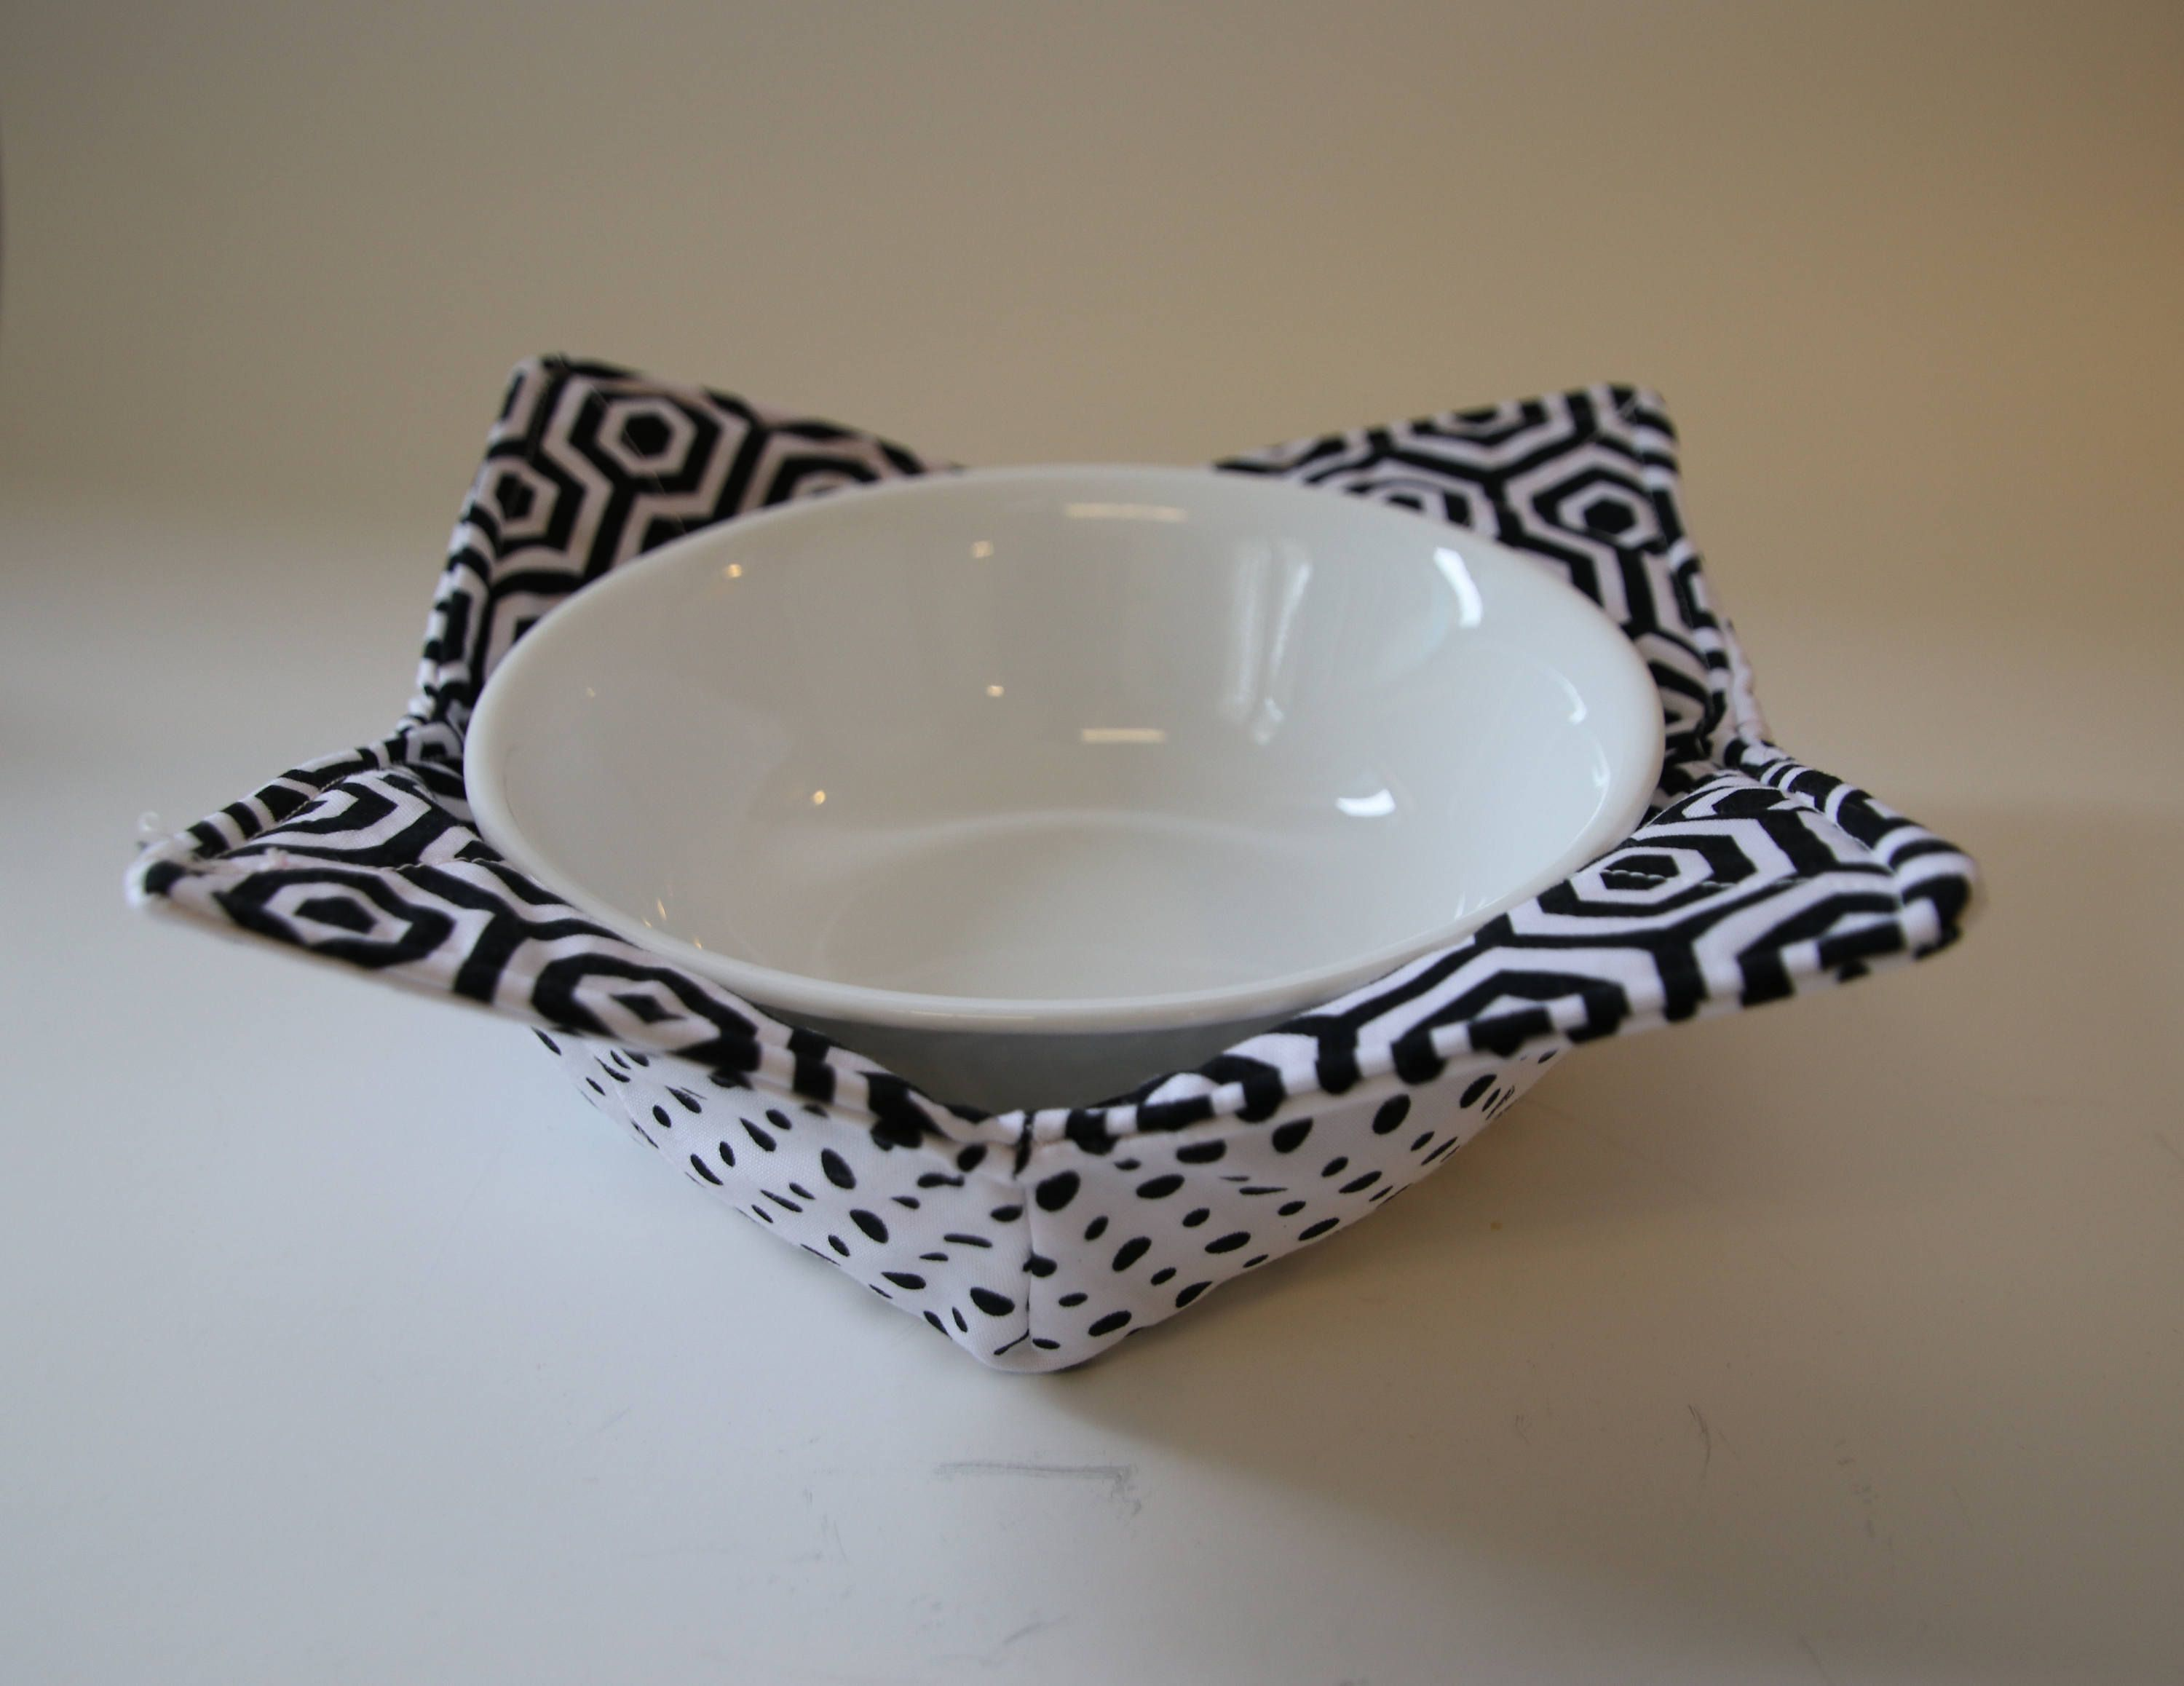 Mosaic Black and White Insulated Bowl Cozy